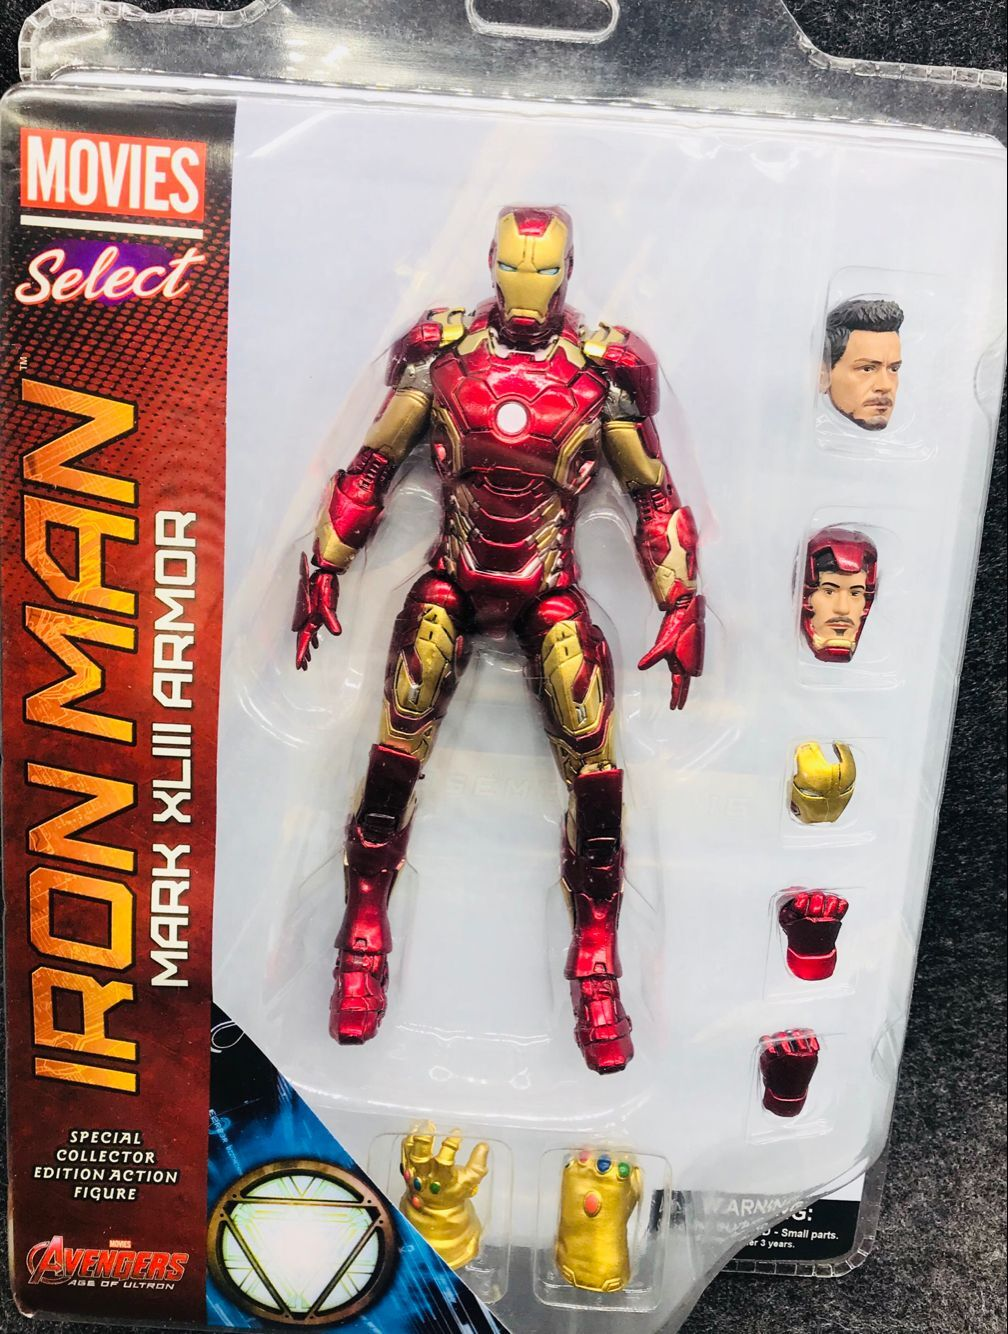 Original Marvel Select Avengers Ironman Mark 45 Super Hero Iron Man Action Figure Model Toys 18cm skiip28anb16v1 28anb16v1 module igbt skiip 28anb16v1